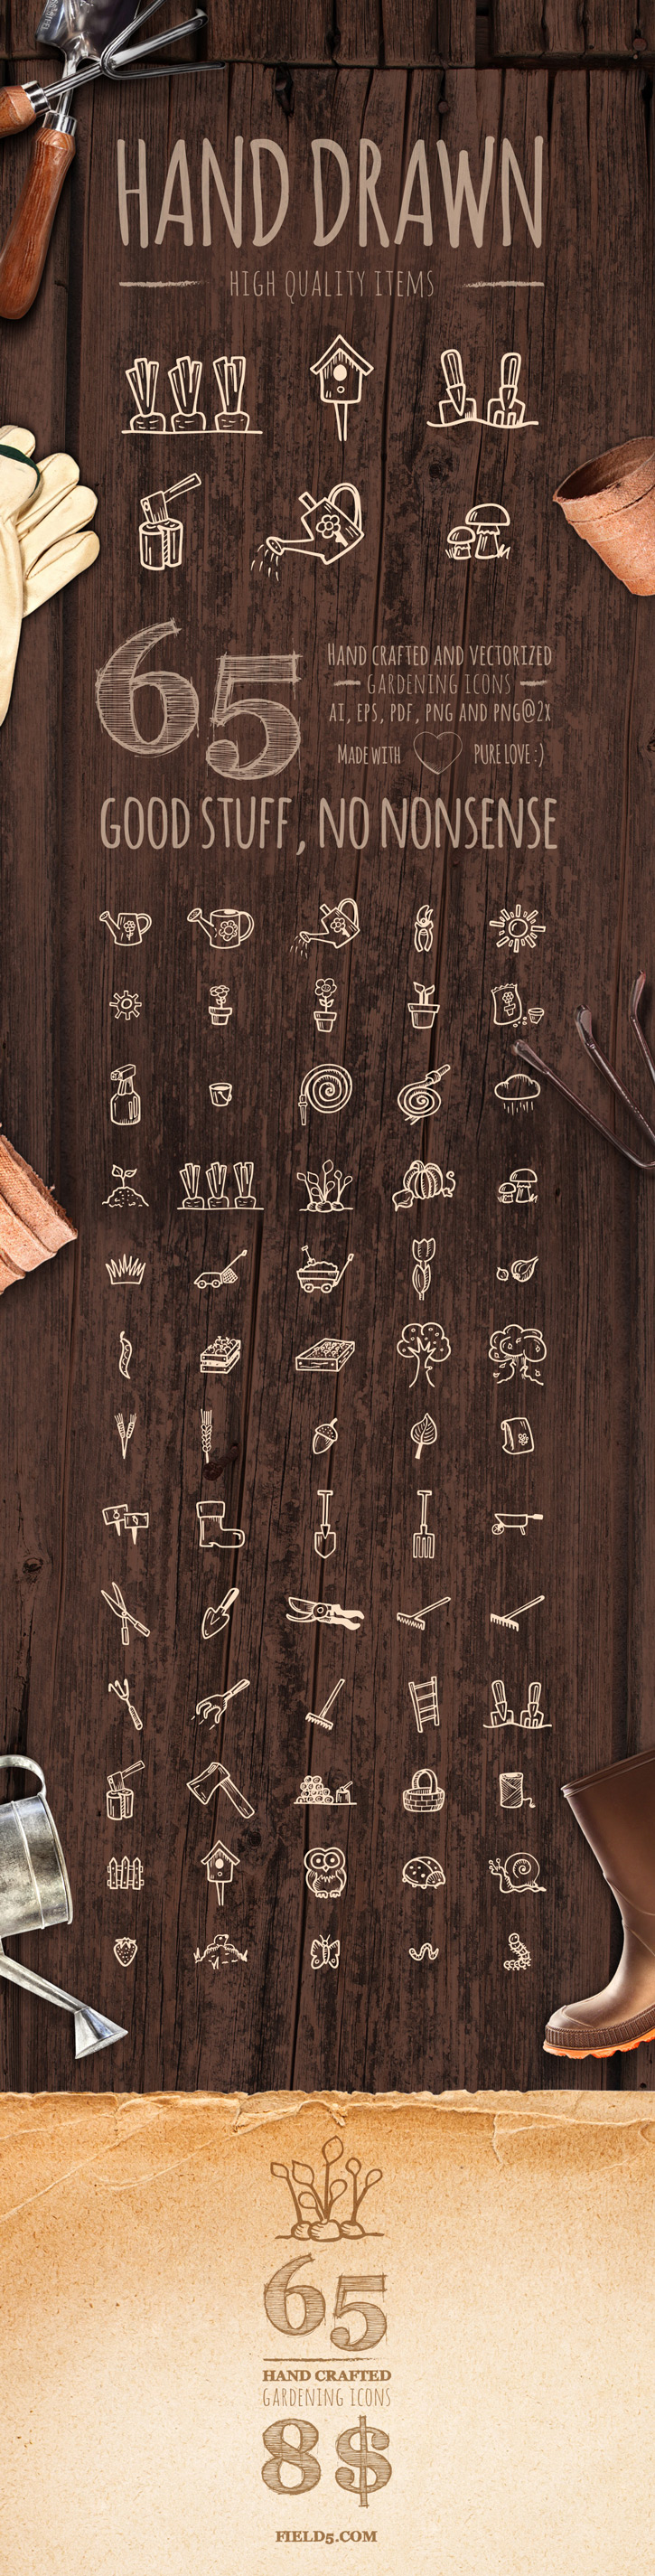 65-hand-drawn-gardening-icons